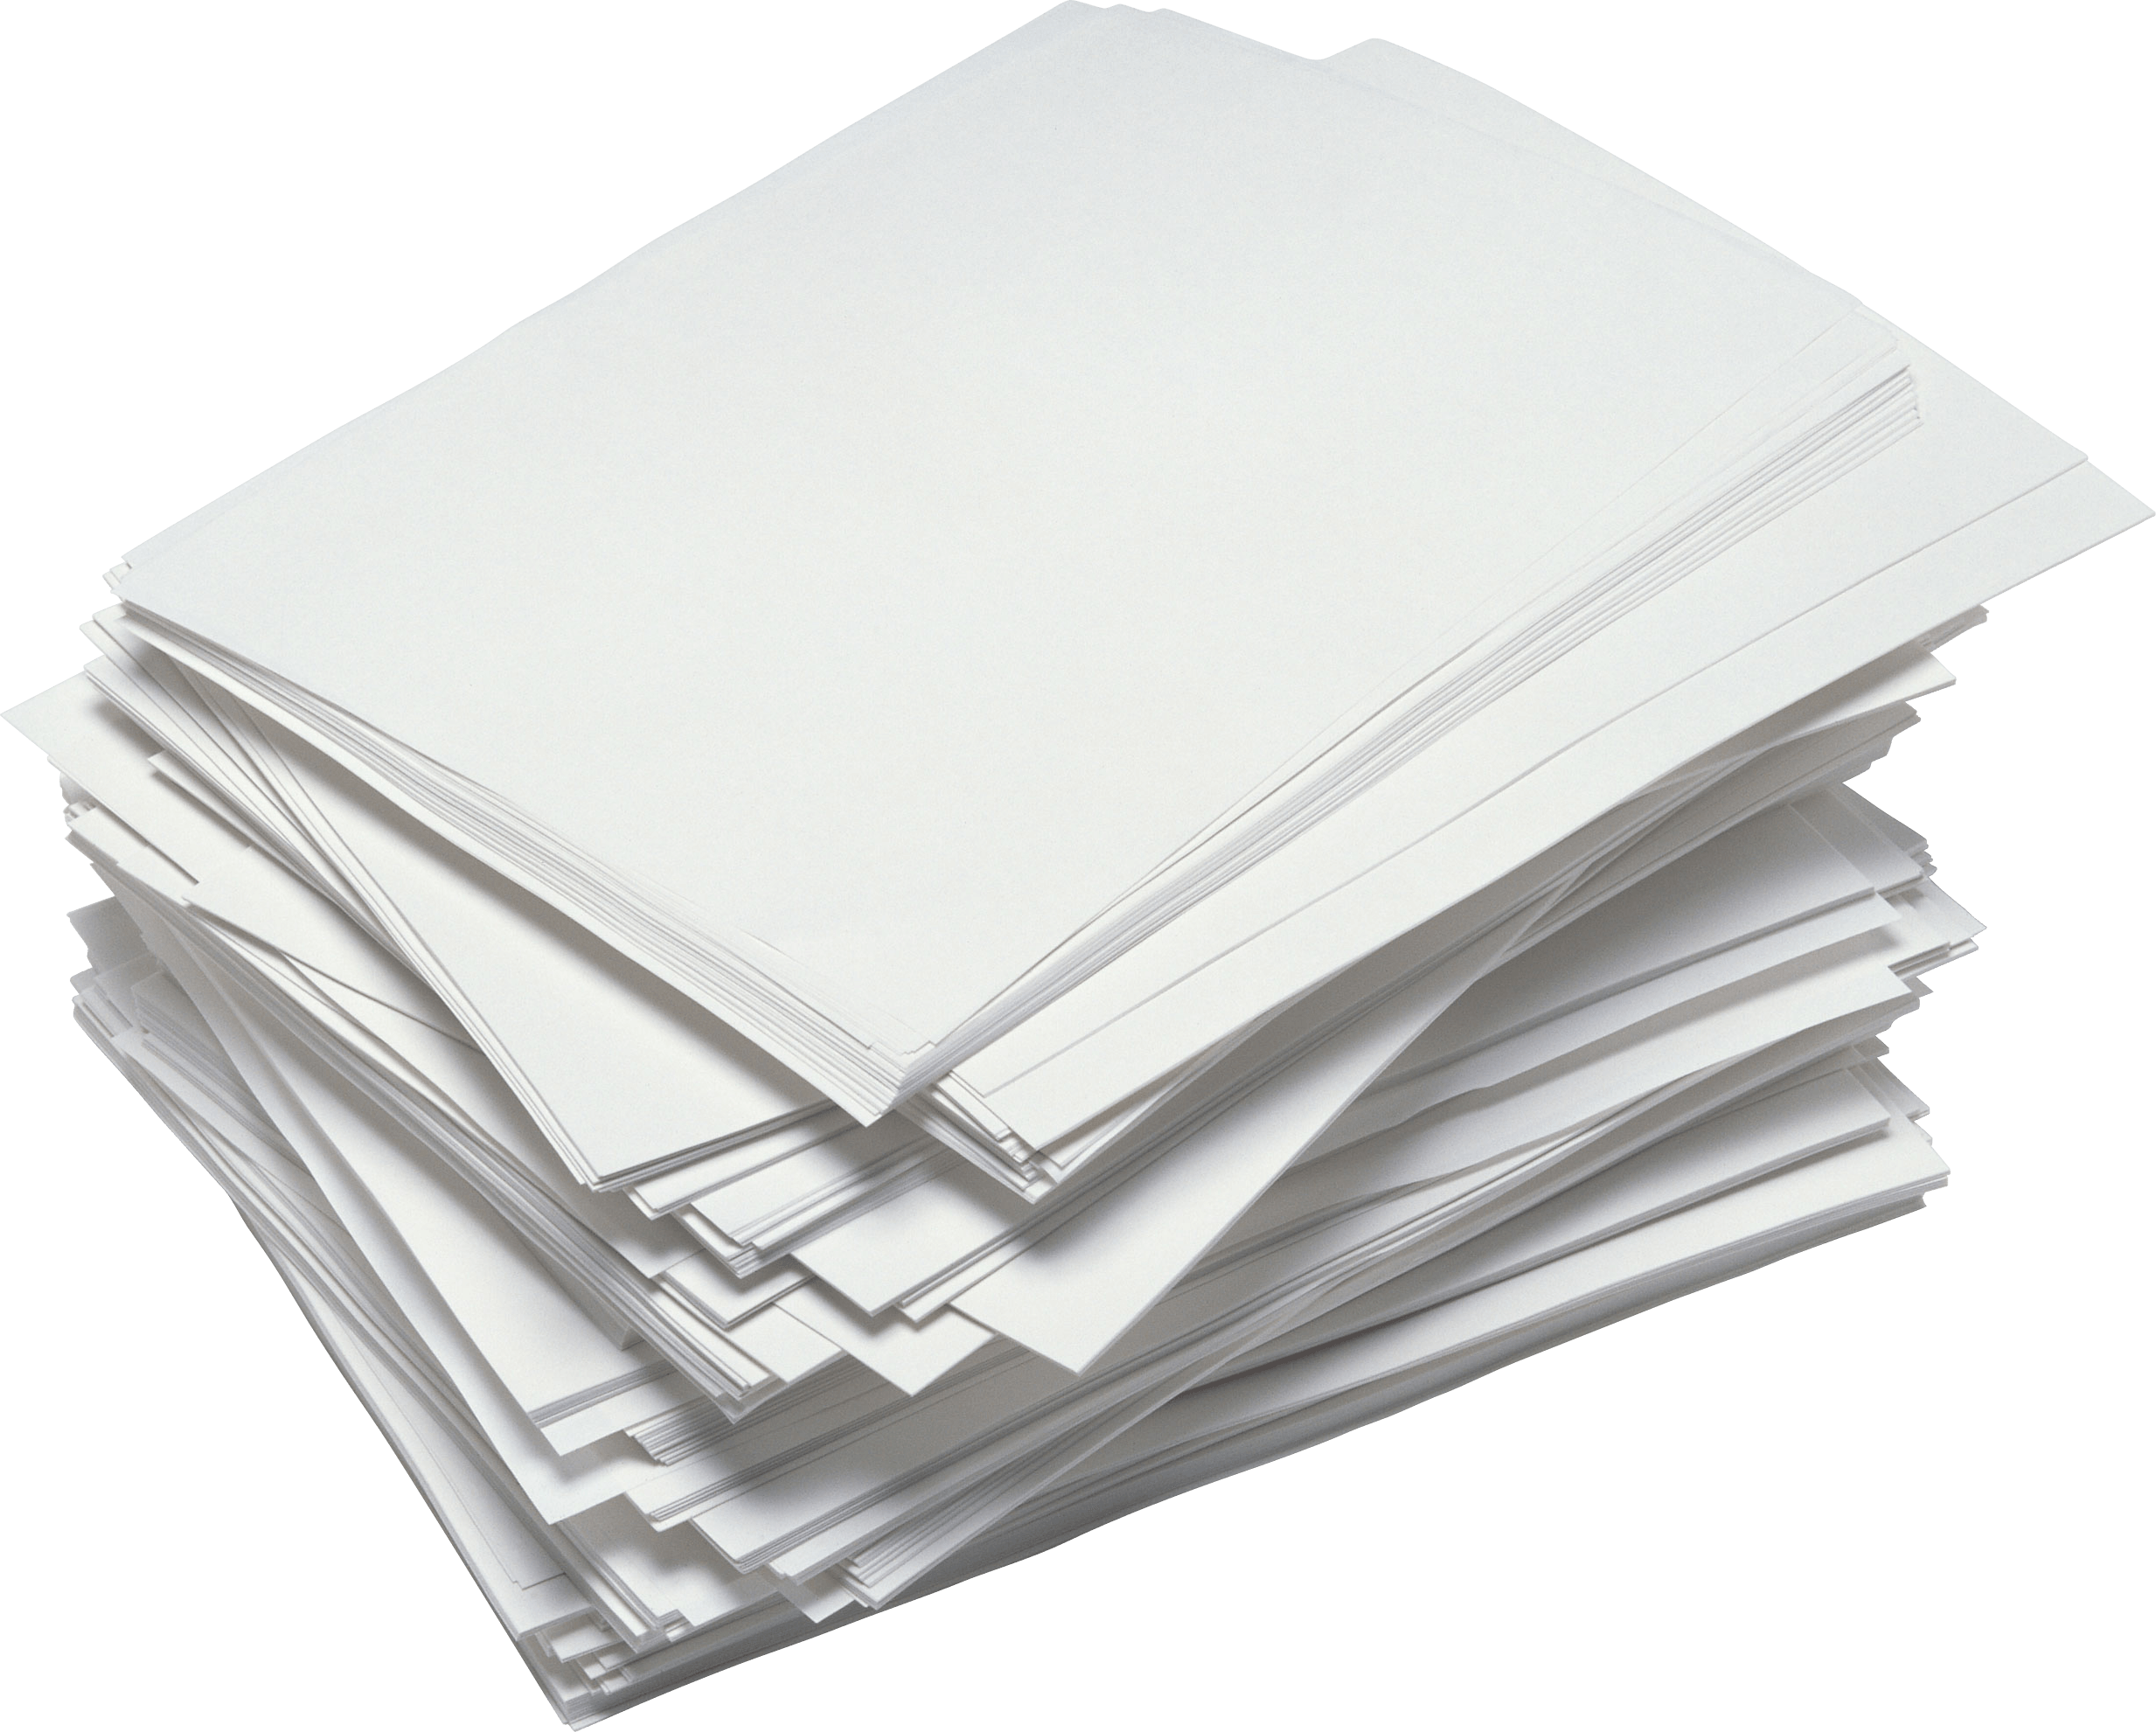 Messy Paper Stack transparent PNG.